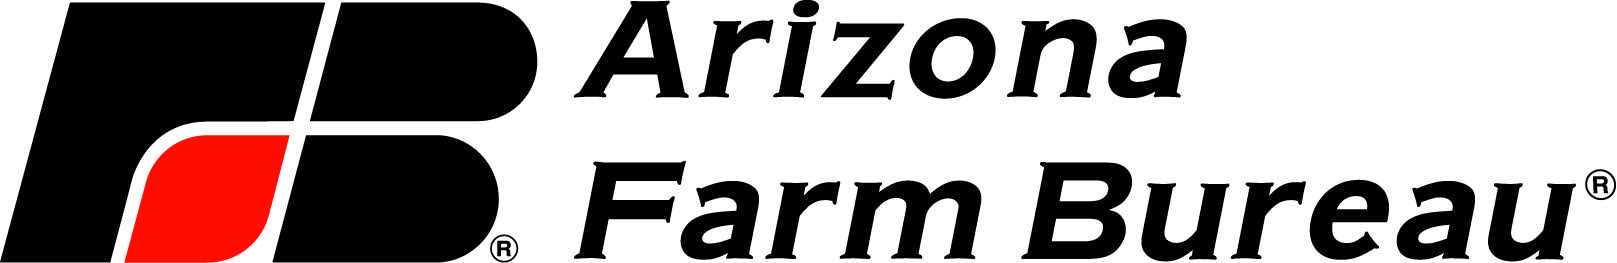 AZFB logo with text.jpg